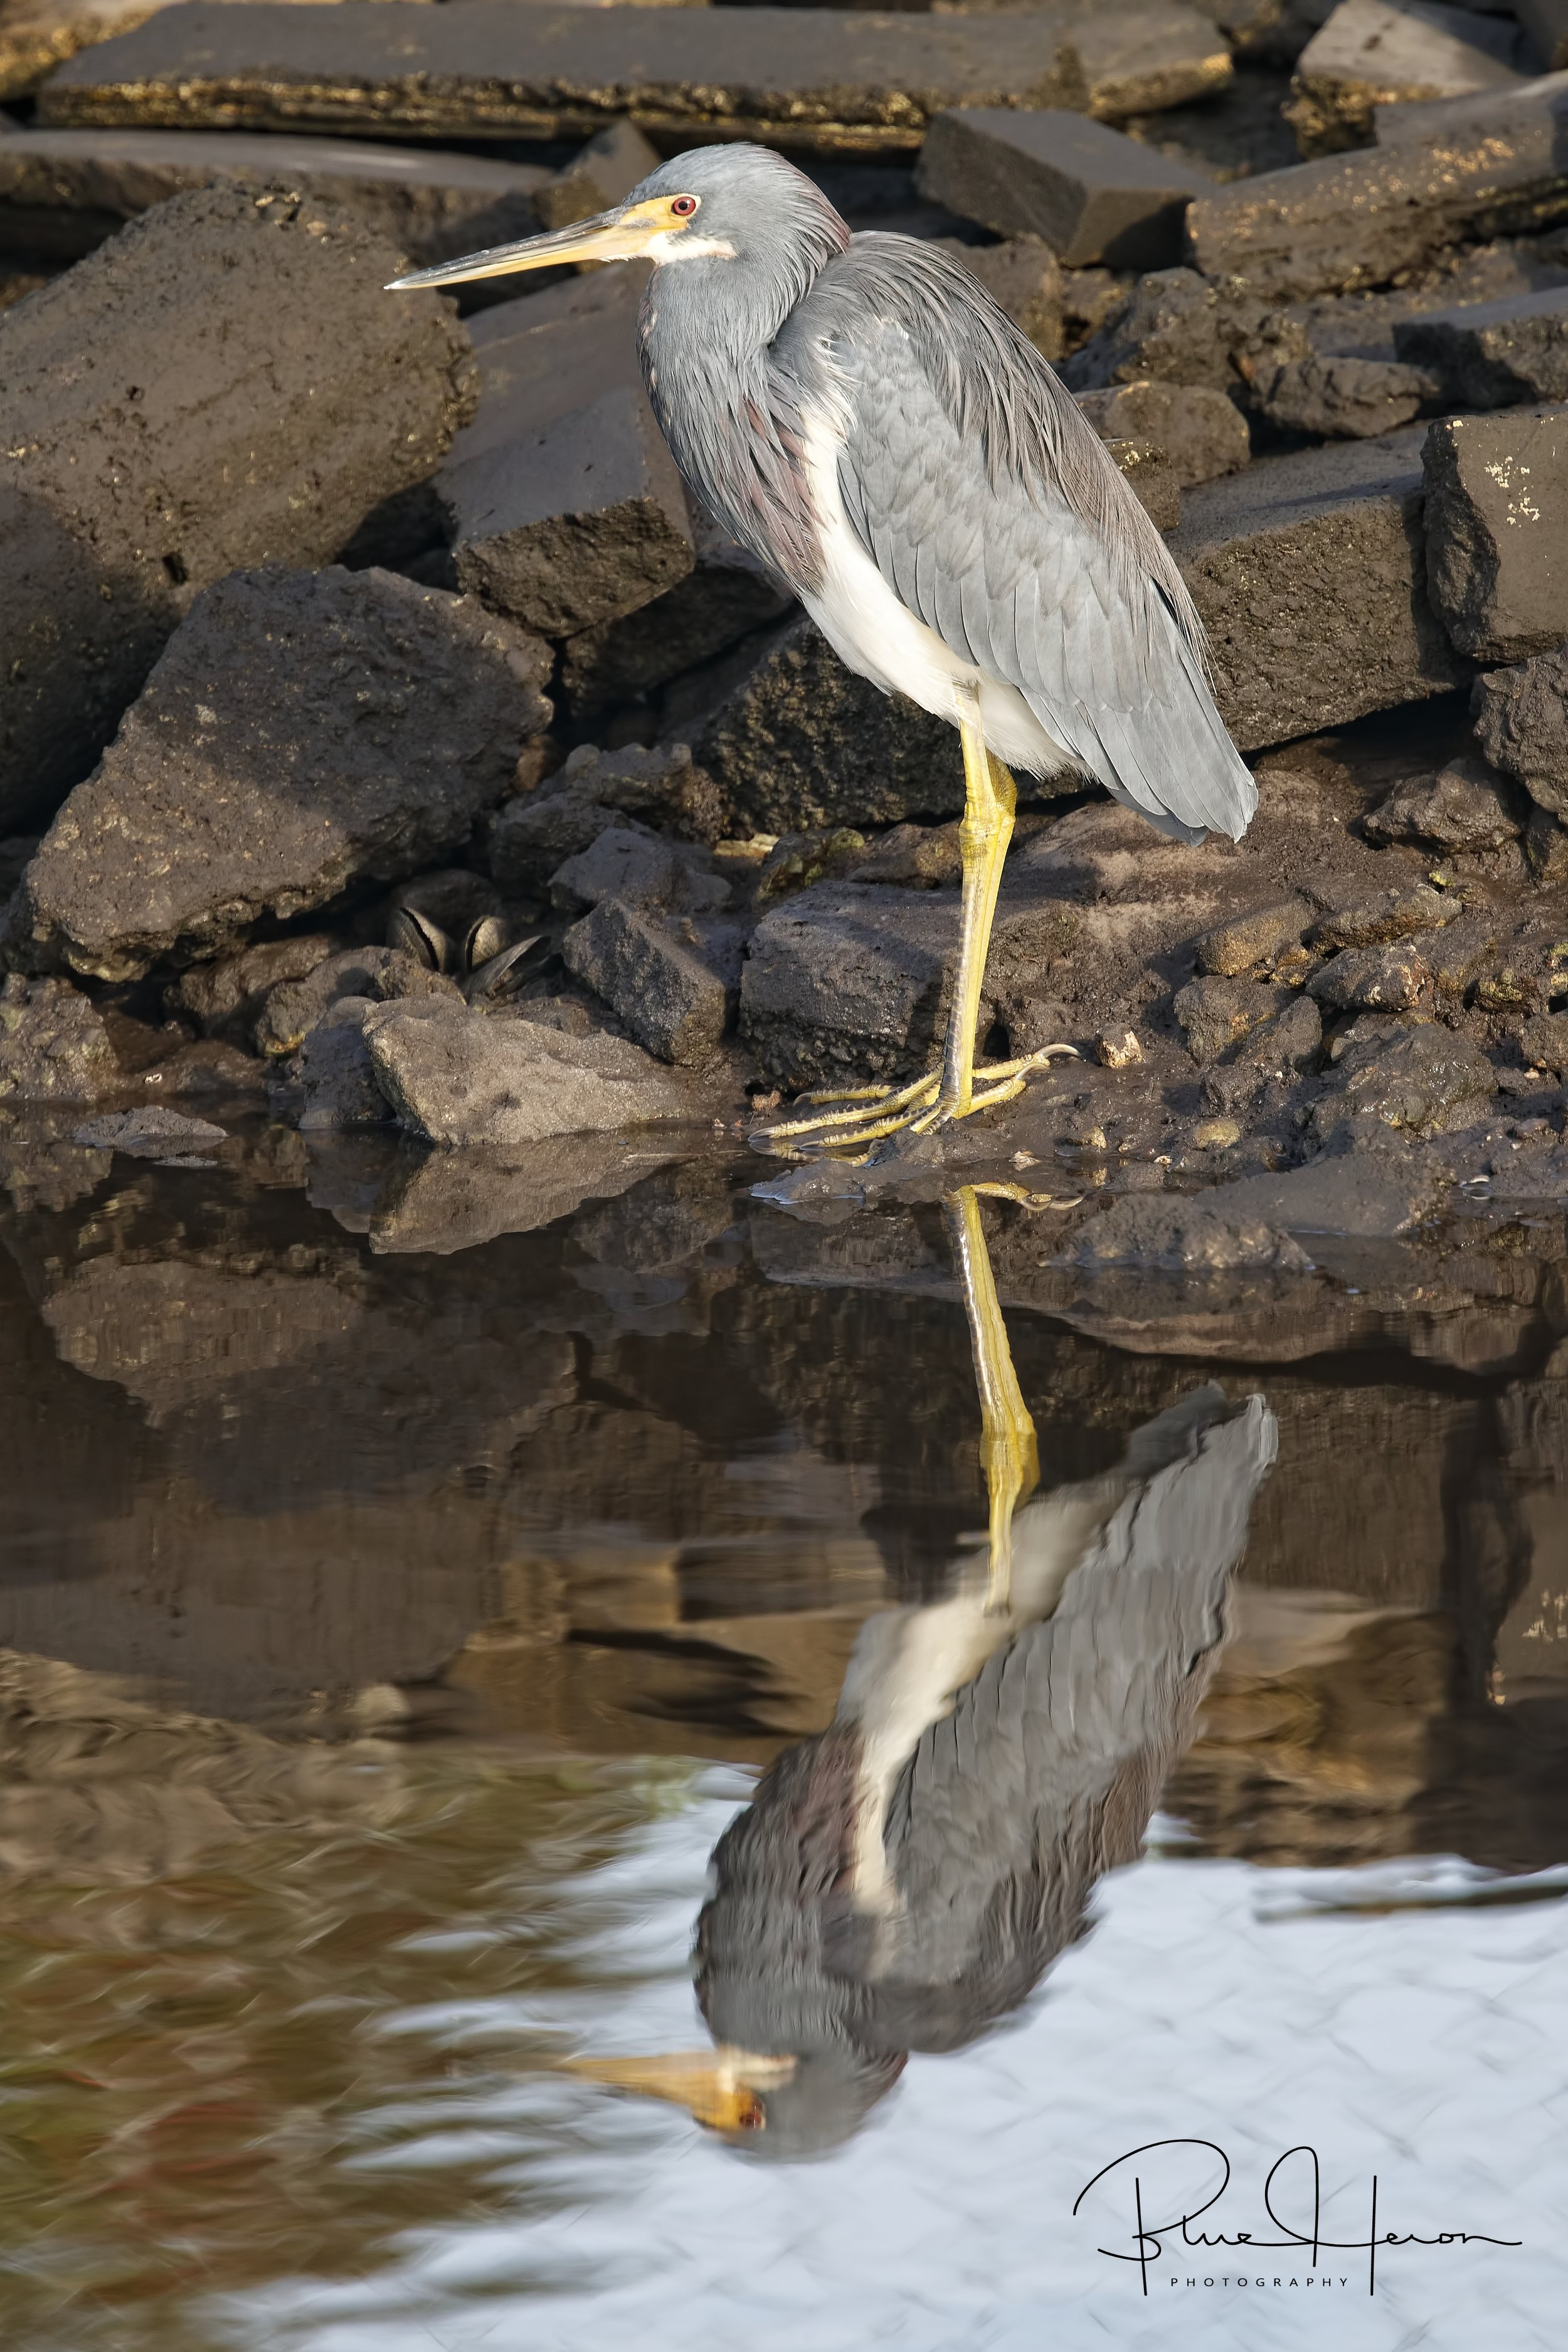 Tricolored Heron reflects on the day…one I won't soon forget